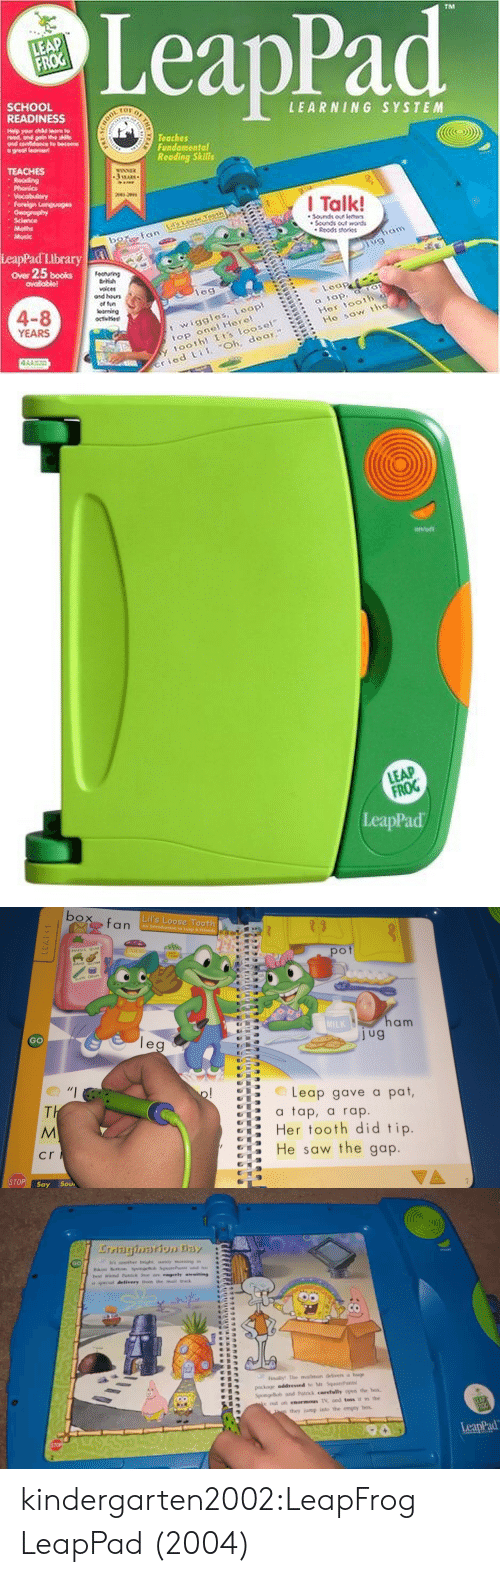 Books, LeapFrog, and Music: LeapPad  SCHOOL  READINESS  LEARNING SYSTEM  Teaches  Fundomental  Reoding Skills  Phonic  I Talk!  Sdance  Rodt eries  LeapPad Library  ower 25 books  ovailabiel  les  4-8  YEARS  t wiggles, Loap  op onel Herel  oothl Is loosel  Hes toot  Ho sow tt  ried i Oh, deor8   LEAP  FROG  eapPad   Lil's Loose Tooth  pot  MuSic Quiz  MiL  am  GO  Leap gave a pat,  tap, a rap.  Her tooth did tip  He saw the gap  cr  STOP! say Sou   GO  a special delivery hom the mail tnack  Finally The mailman delivers huge  SpongeBob and Patrck carefully open the hox.  e out an enormous TV, and toss it in the  they jump into the empty box  LeapPad kindergarten2002:LeapFrog LeapPad (2004)